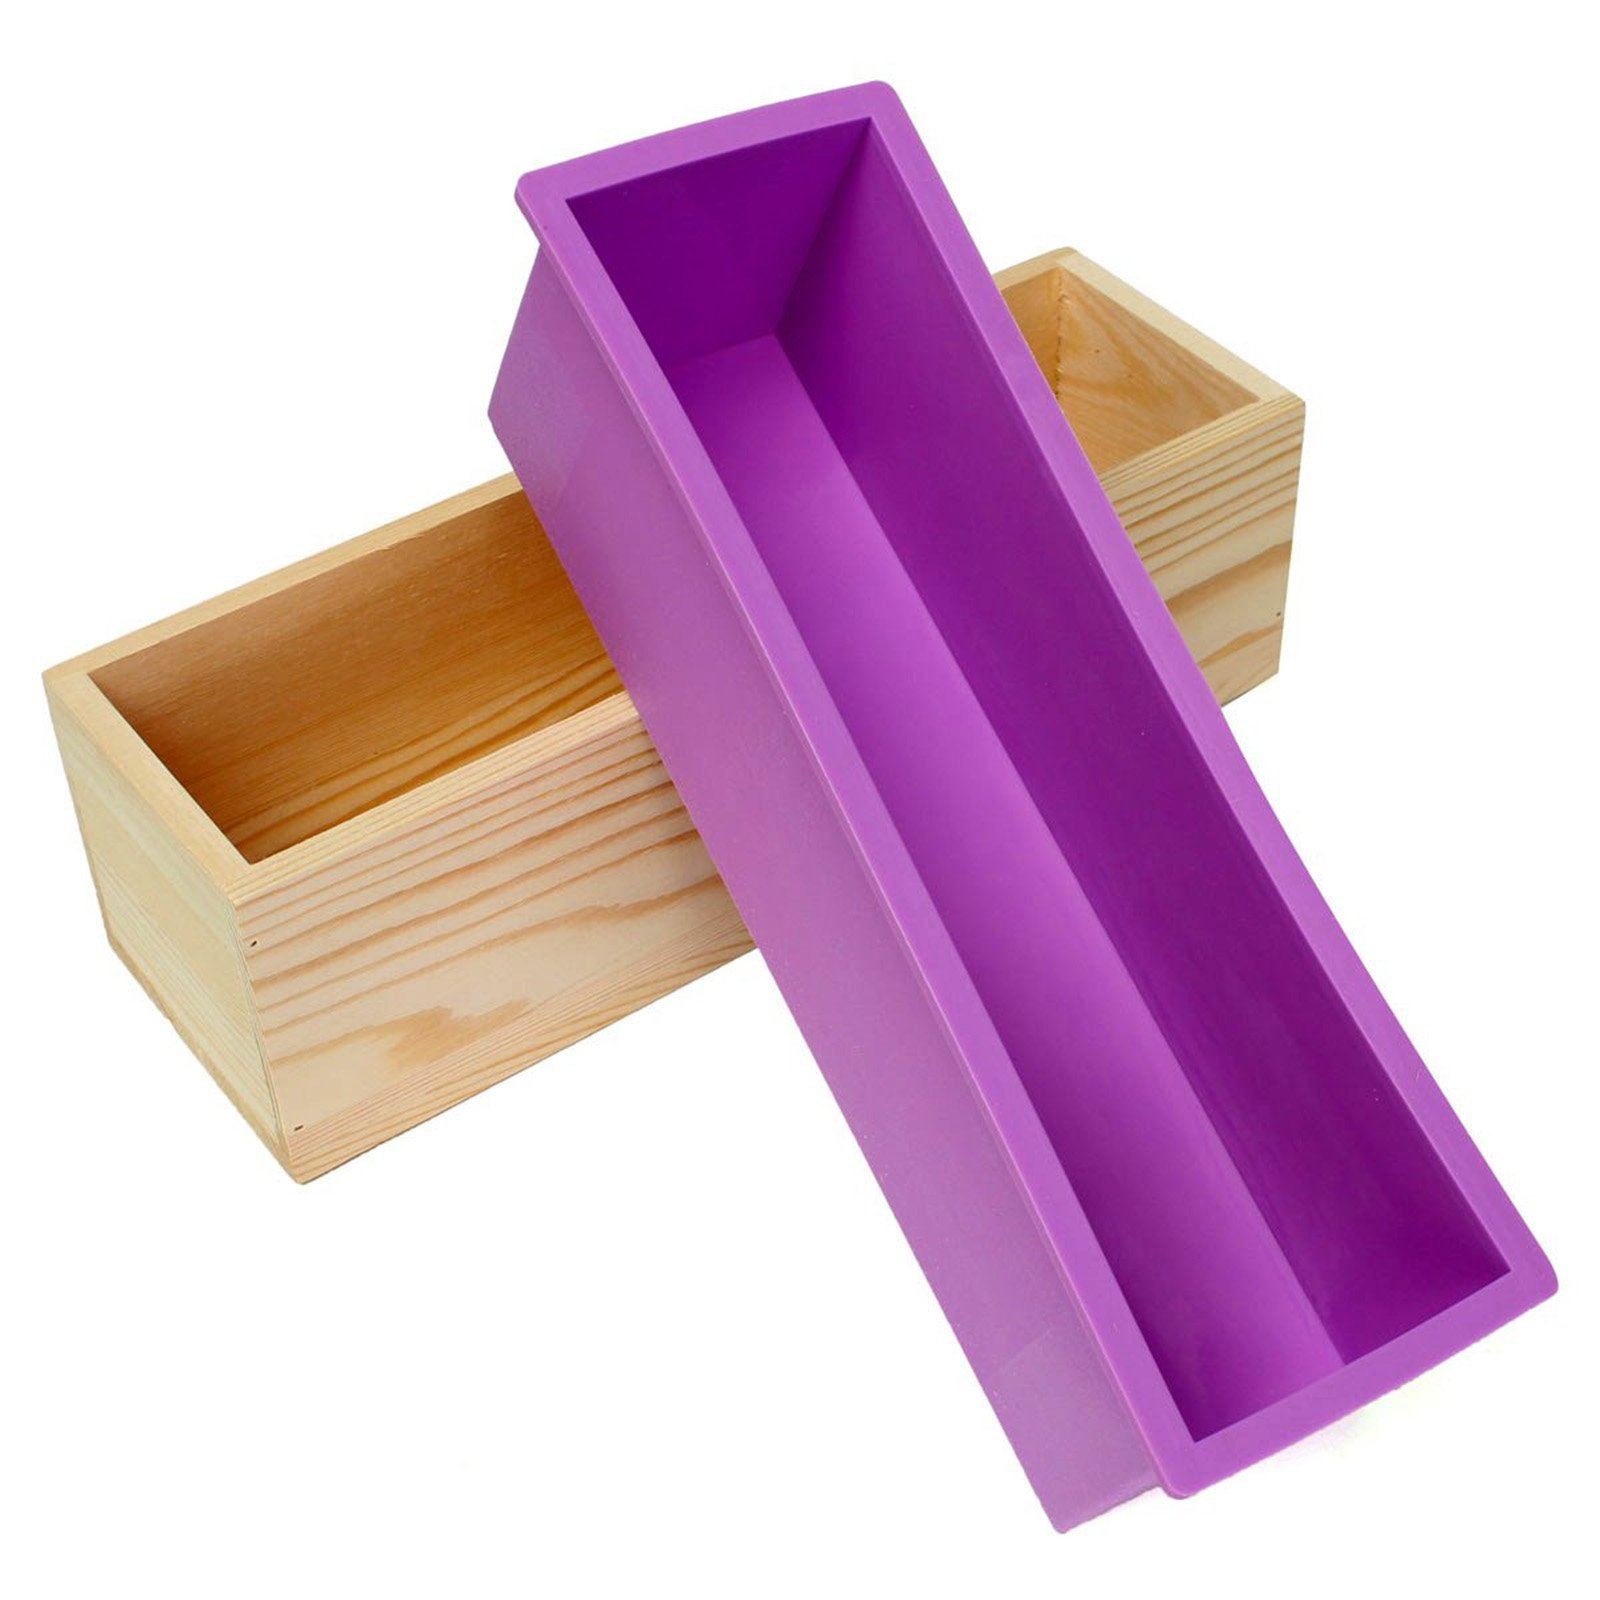 Ogrmar 42oz Flexible Rectangular Soap Silicone Loaf Mold With Wood Box DIY Tool For Soap Cake Making Supplies (Purple)